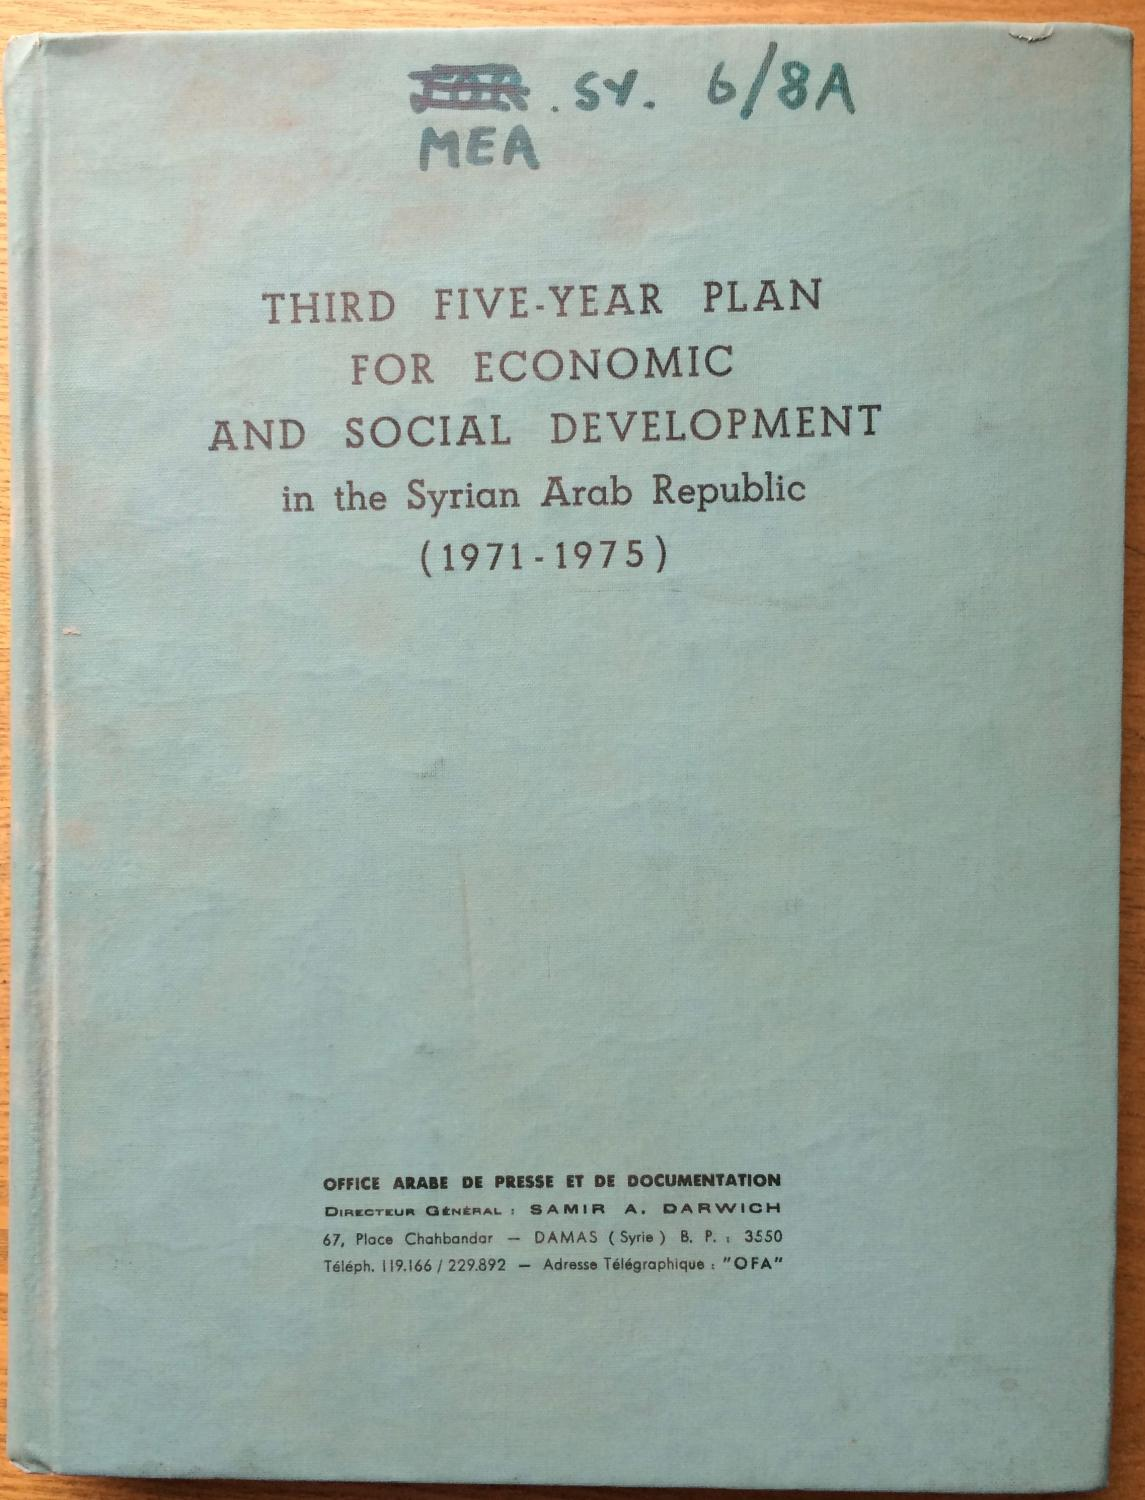 five year plans for economic development Five-year plans: five-year plans, method of planning economic growth over limited periods, through the use of quotas, used first in the soviet union and later in other socialist states.